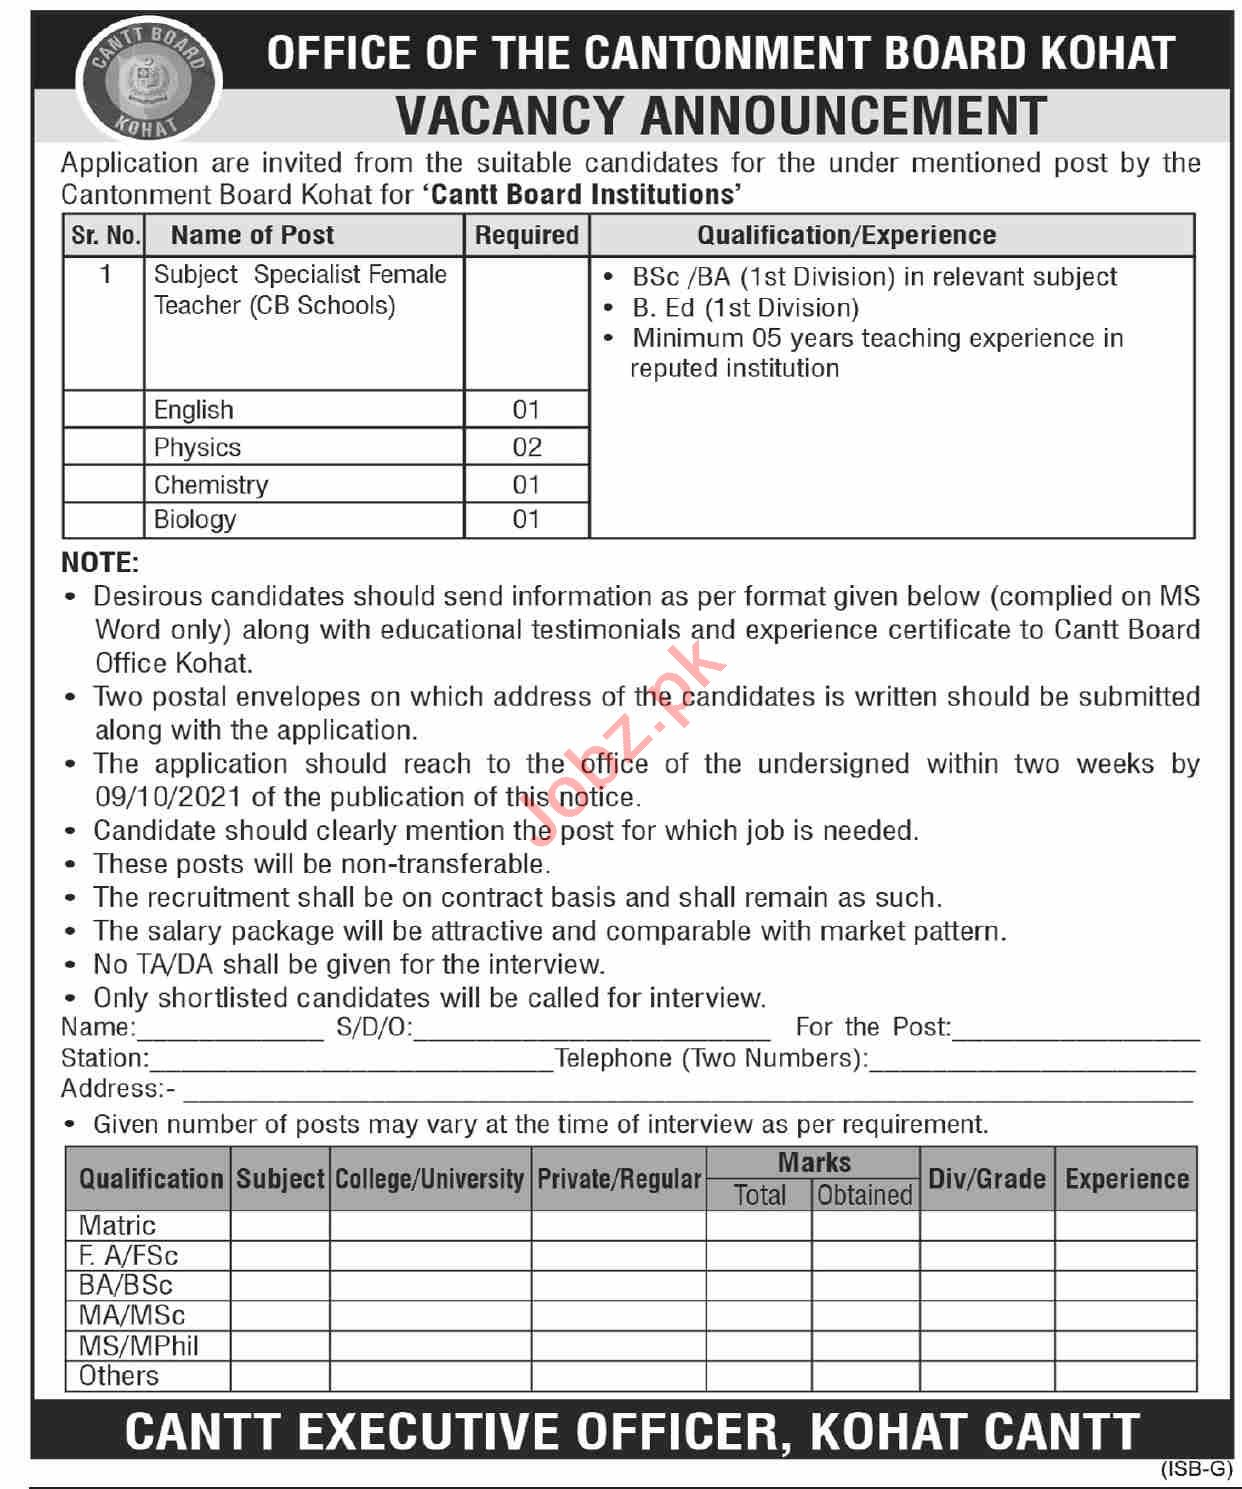 Cantt Board Institutions Kohat Jobs 2021 Subject Specialist